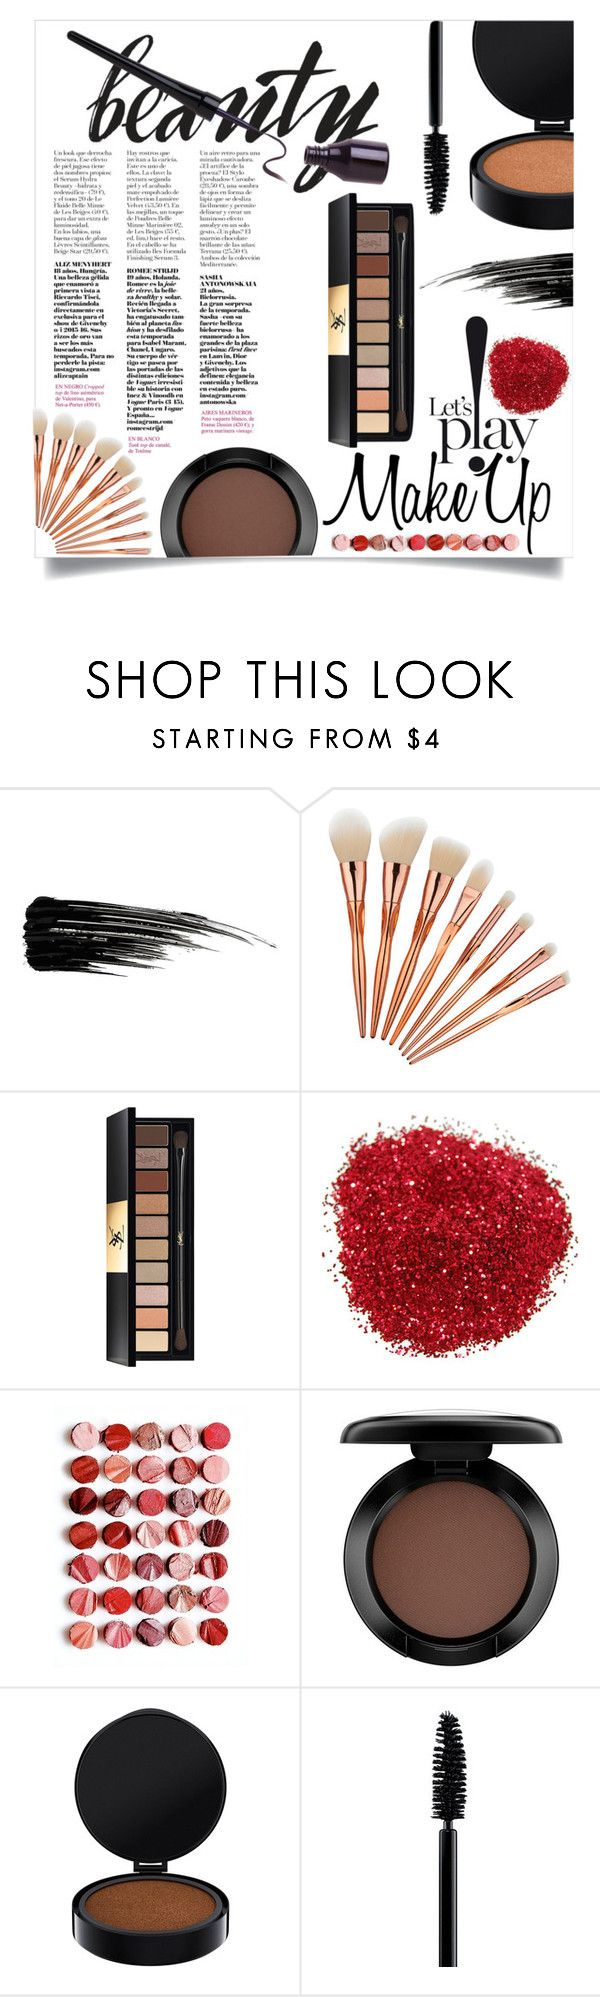 """""""Let's p!ay MakeUp"""" by mery-m-1996 ❤ liked on Polyvore featuring beauty, Urban Decay, Yves Saint Laurent, Free People, MAC Cosmetics and modern"""